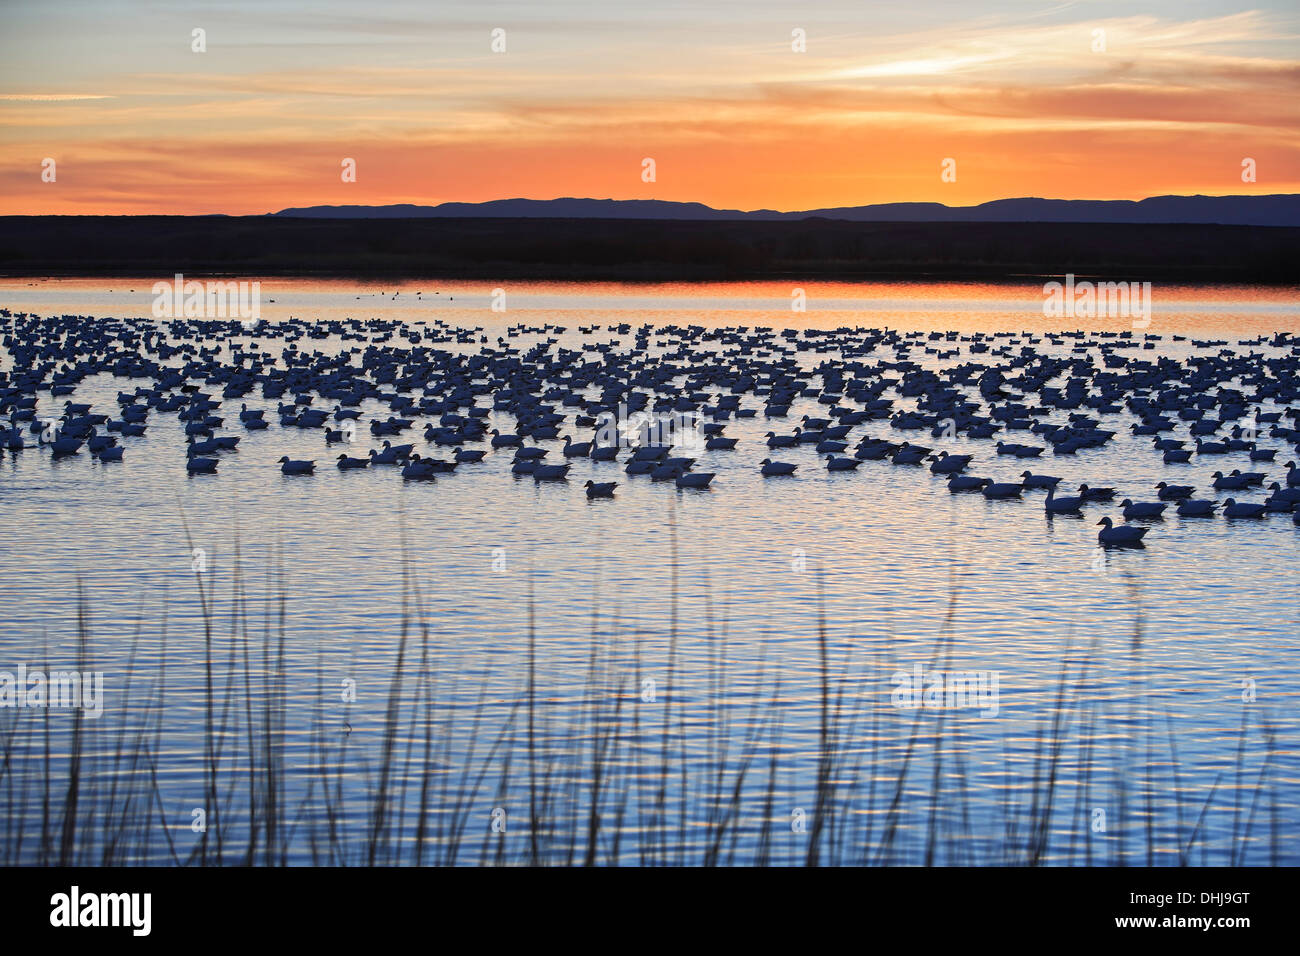 Grasses, snow geese (Chen caerulescens) in pond, and mountains, Bosque del Apache National Wildlife Refuge, New Mexico USA - Stock Image